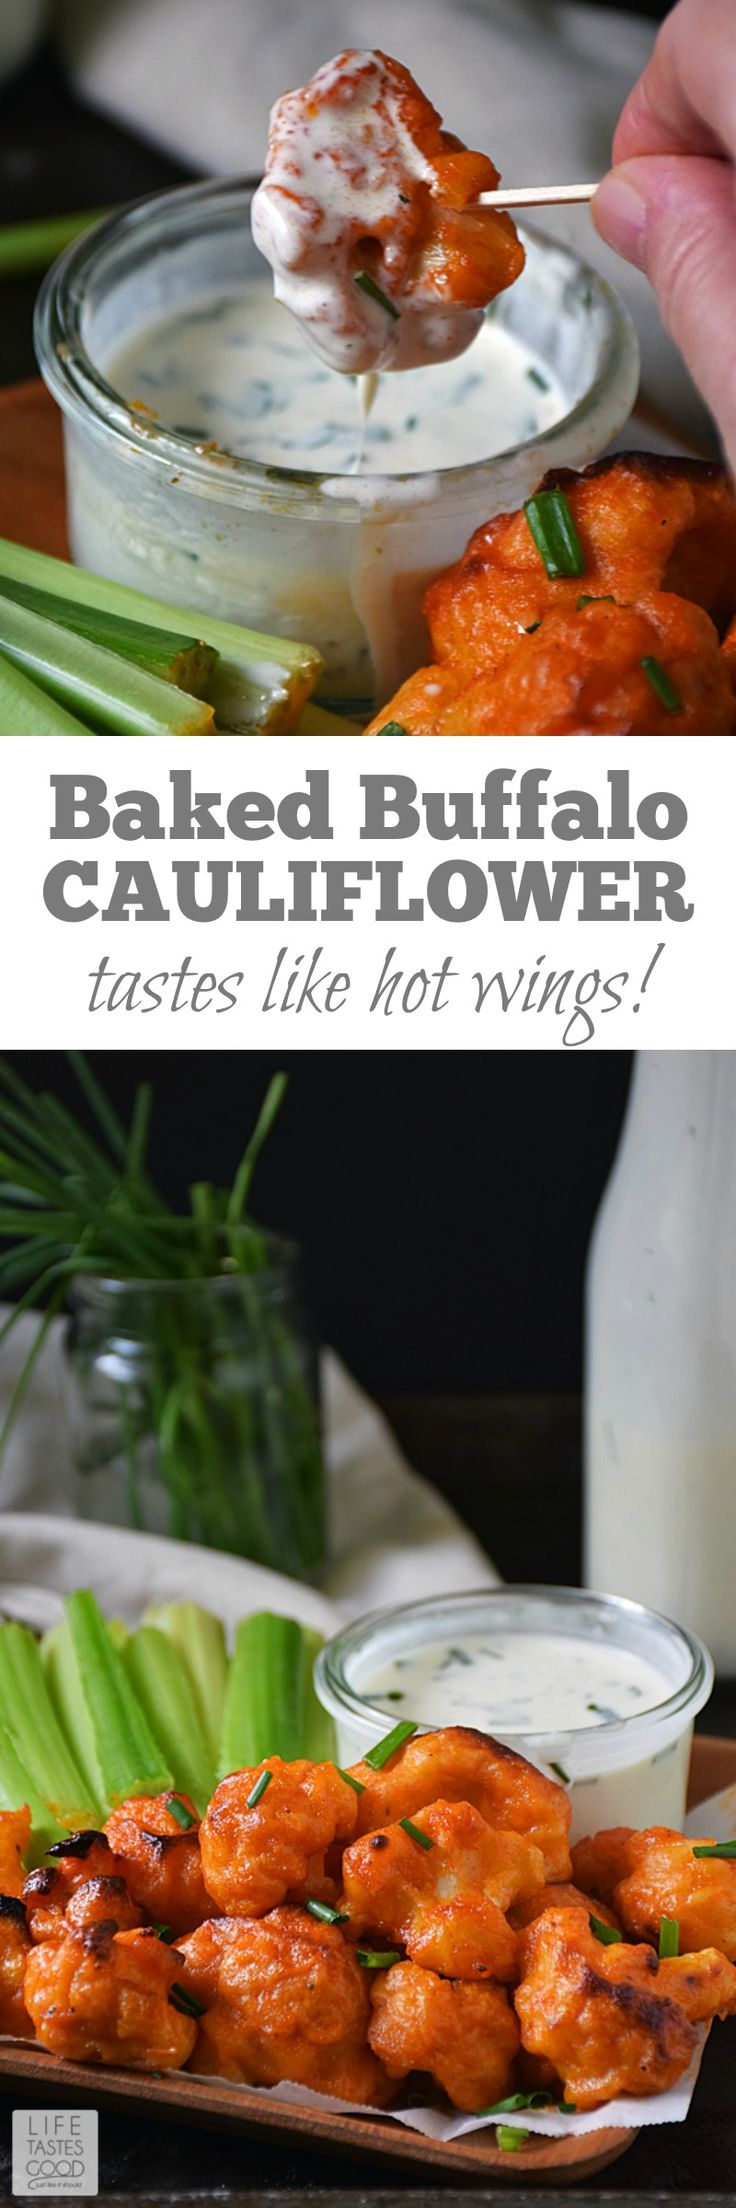 Healthy Wings - Baked Buffalo Cauliflower Bites